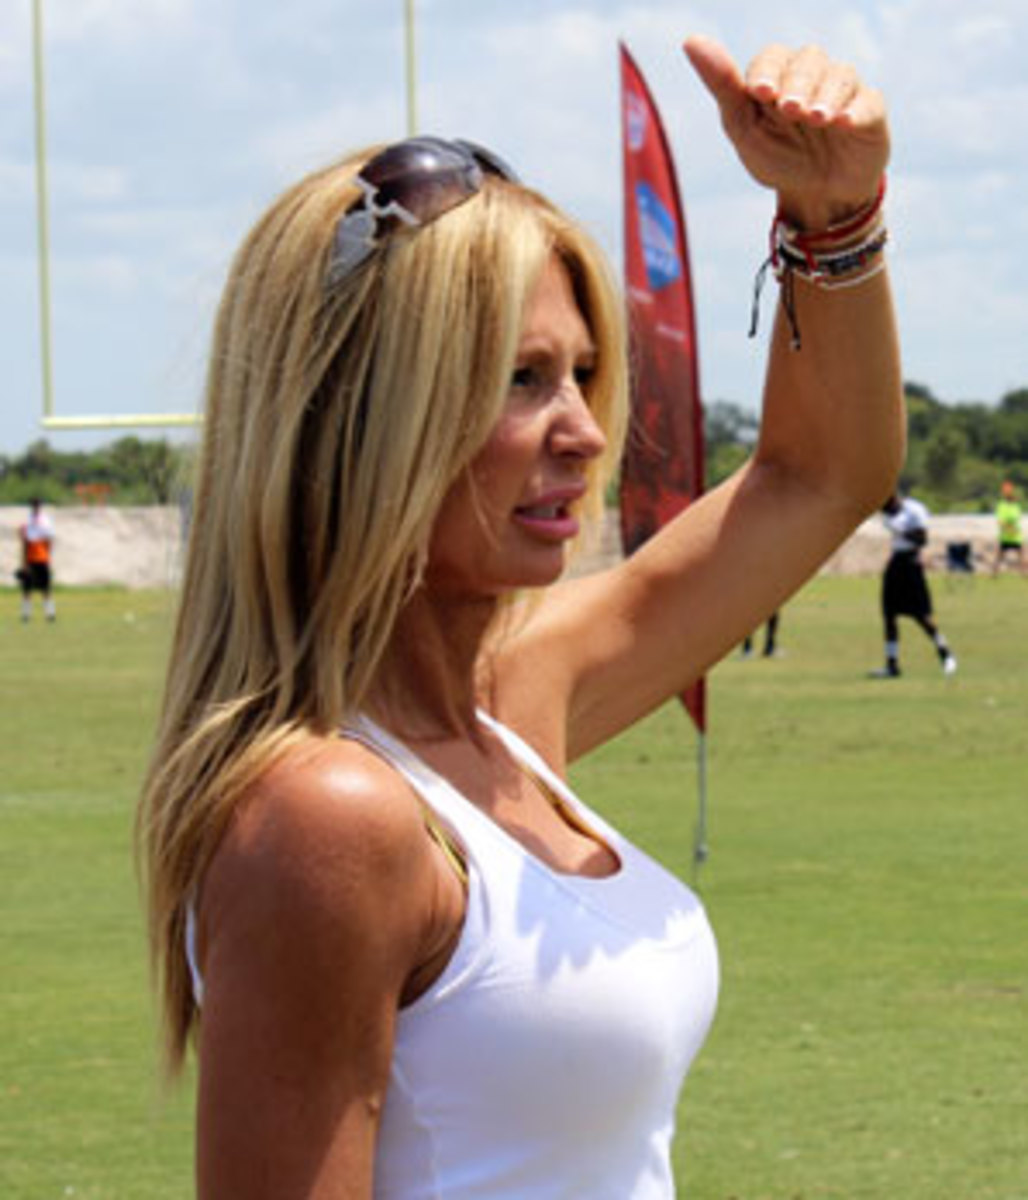 Gina Topolinski footed most of the $15,000 bill to get the IDFFL team to Florida for a 7-on-7 tournament.